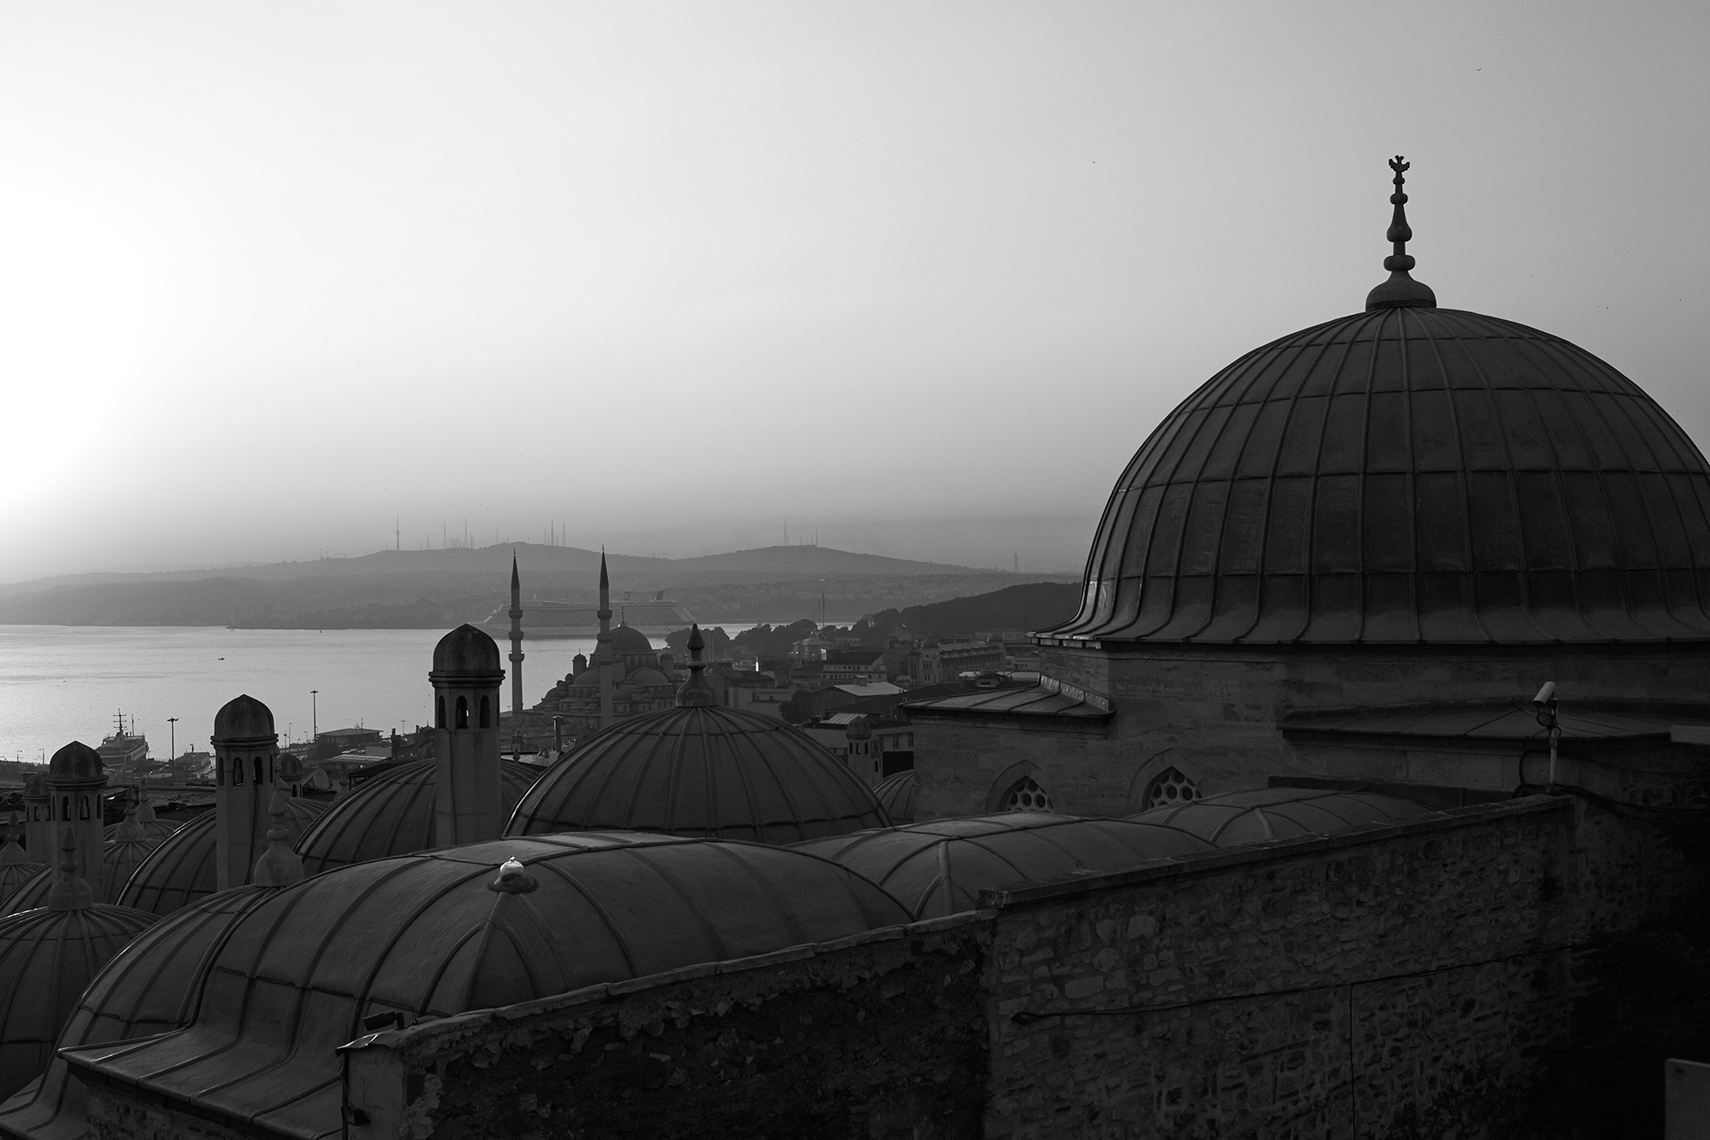 GH_TRAVEL_ISTANBUL_49